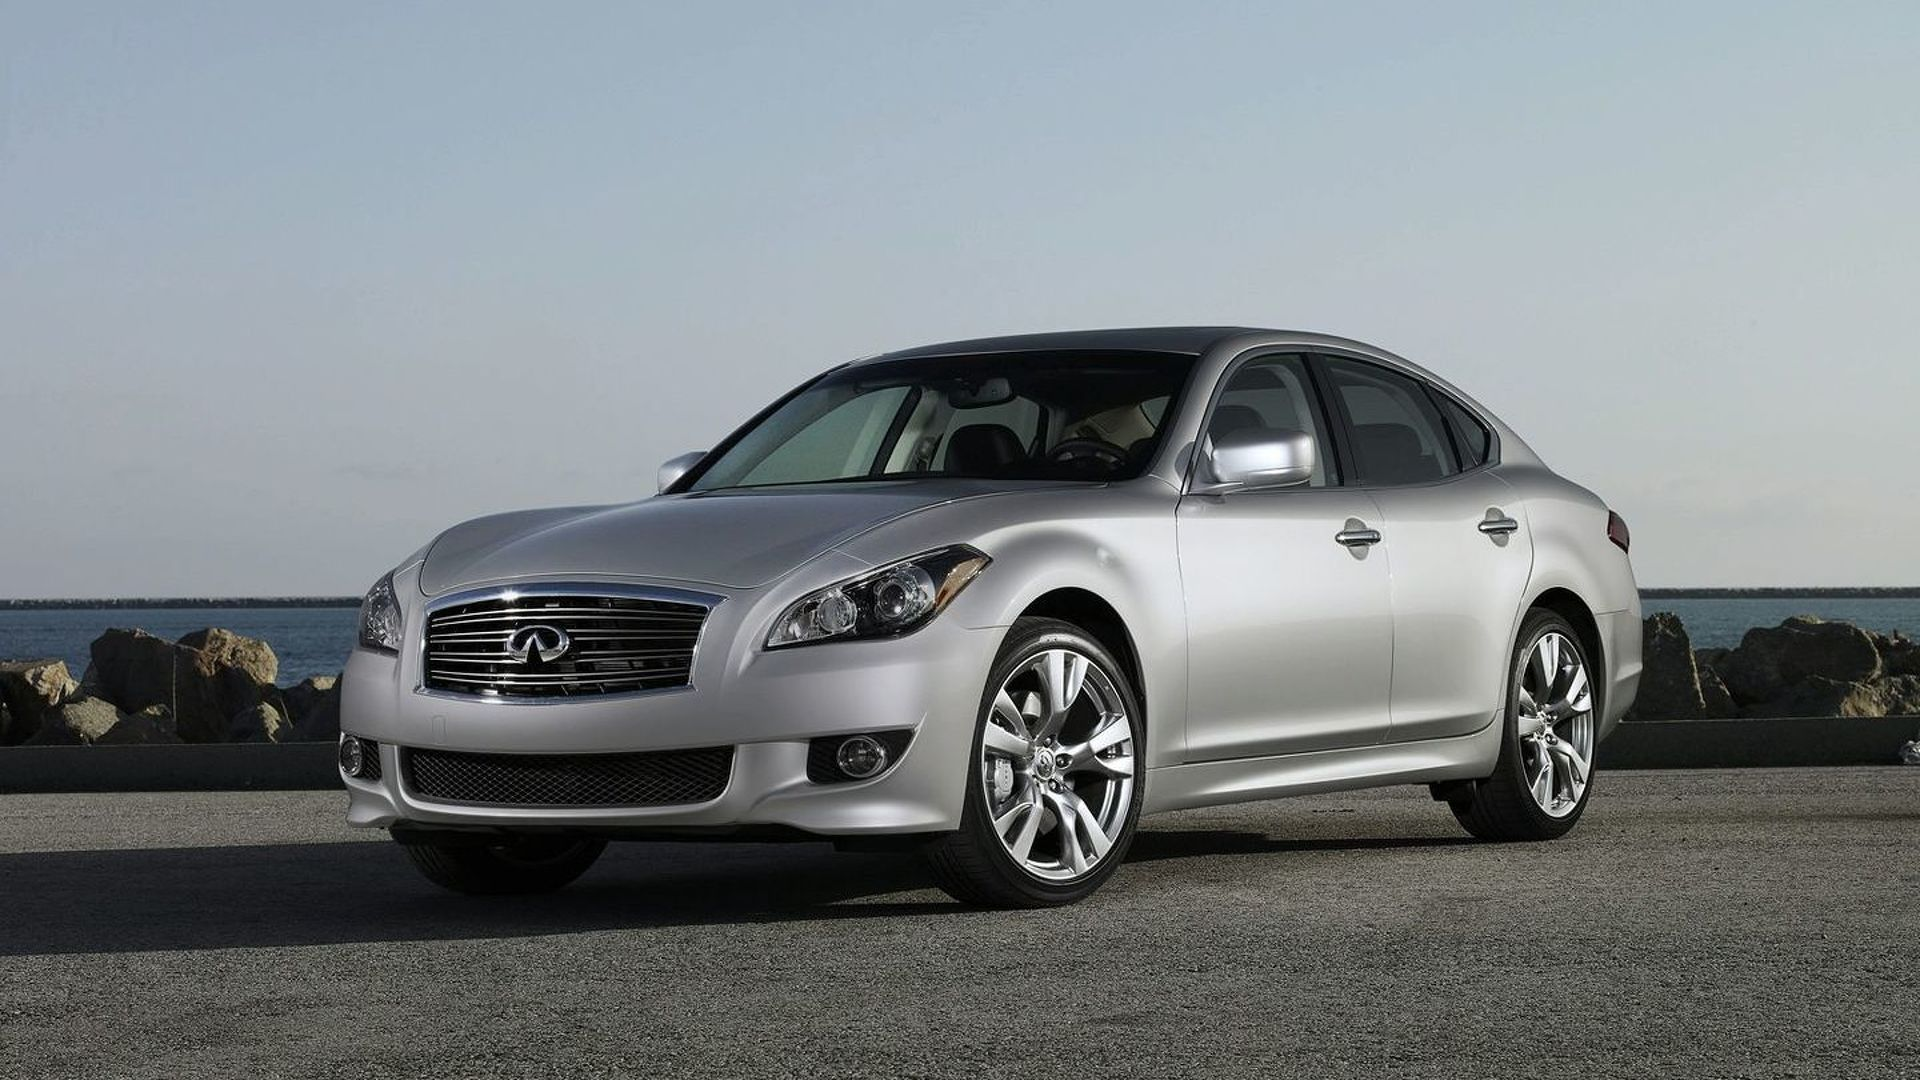 2011 Infiniti M: New Details, Images Released